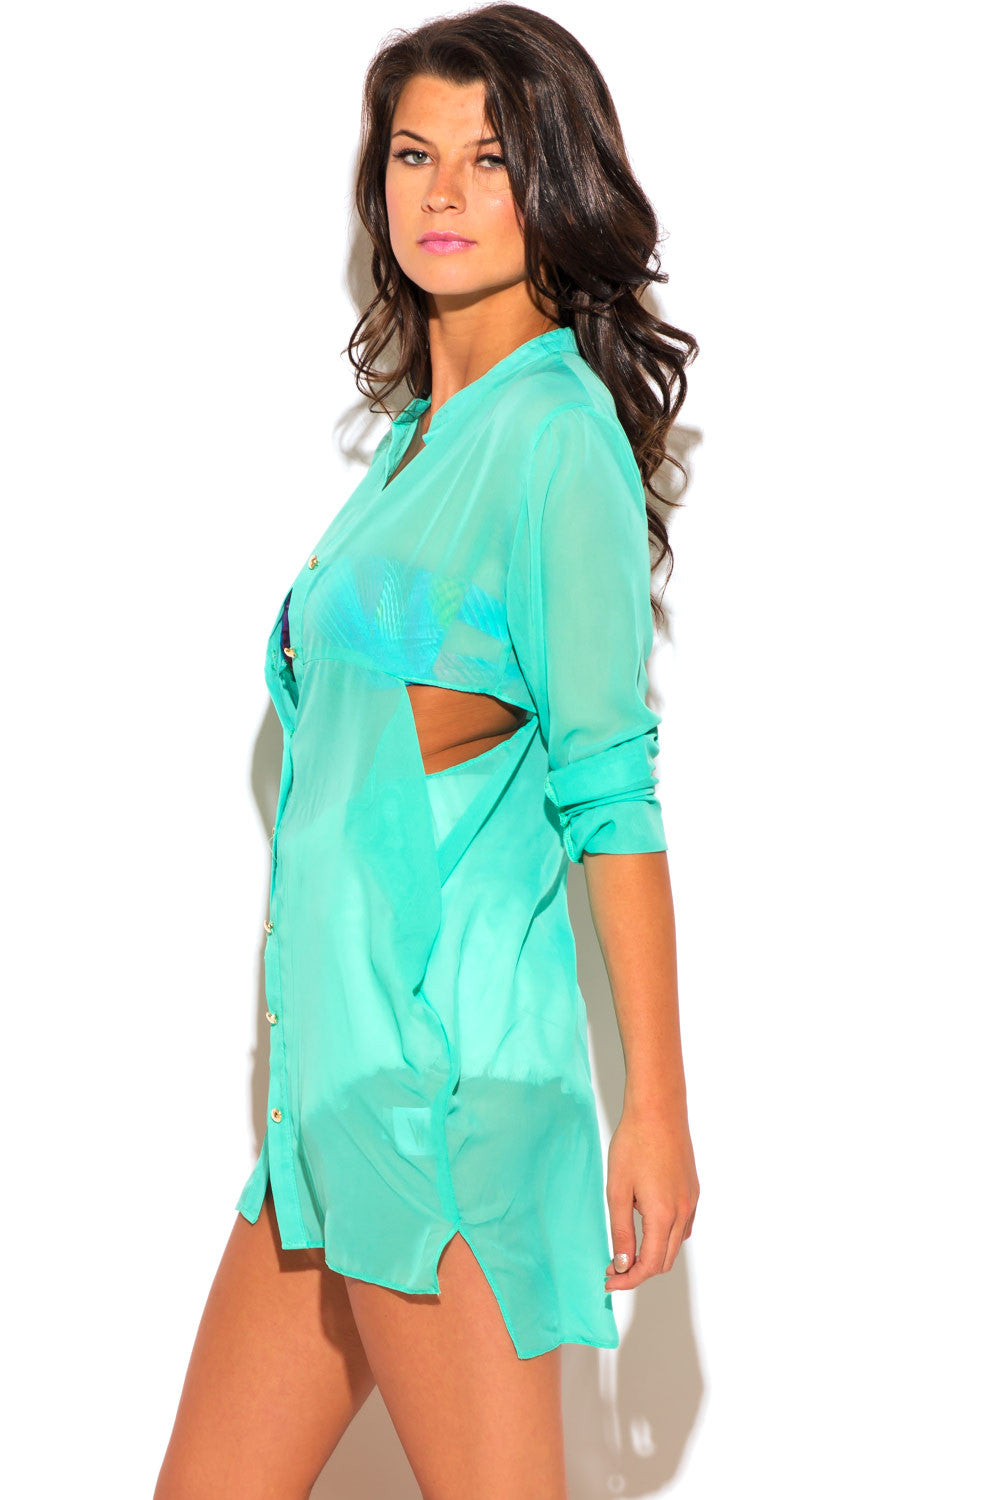 Lindsey Shirt Dress - waist trainer, dress - waist trainer, swancoast.com ann chery,